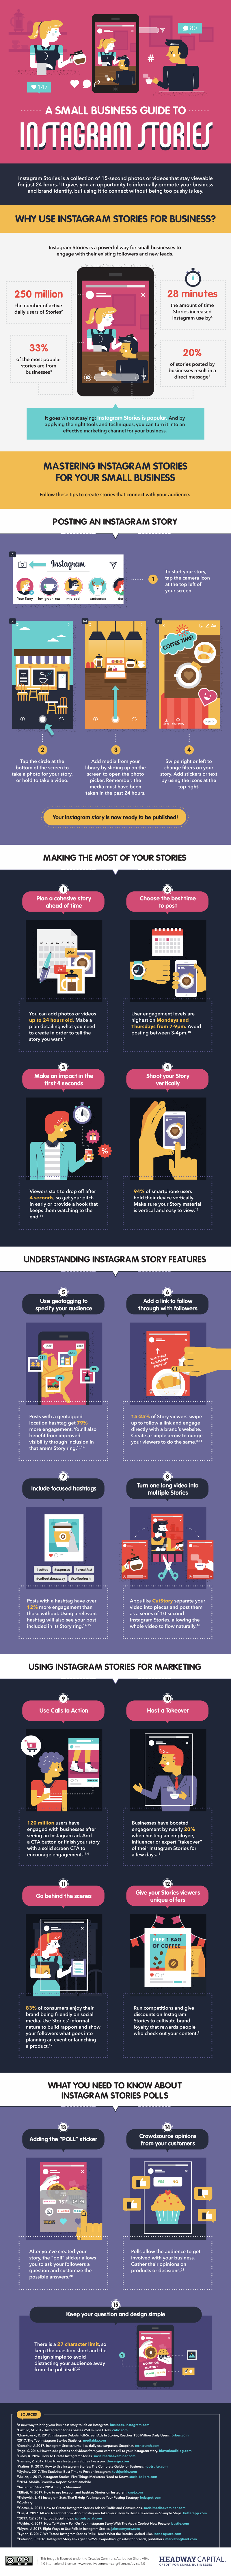 Have you tried Instagram Stories? They're quick, simple, and inexpensive – perfect for your small businesses to engage with followers and attract new leads.